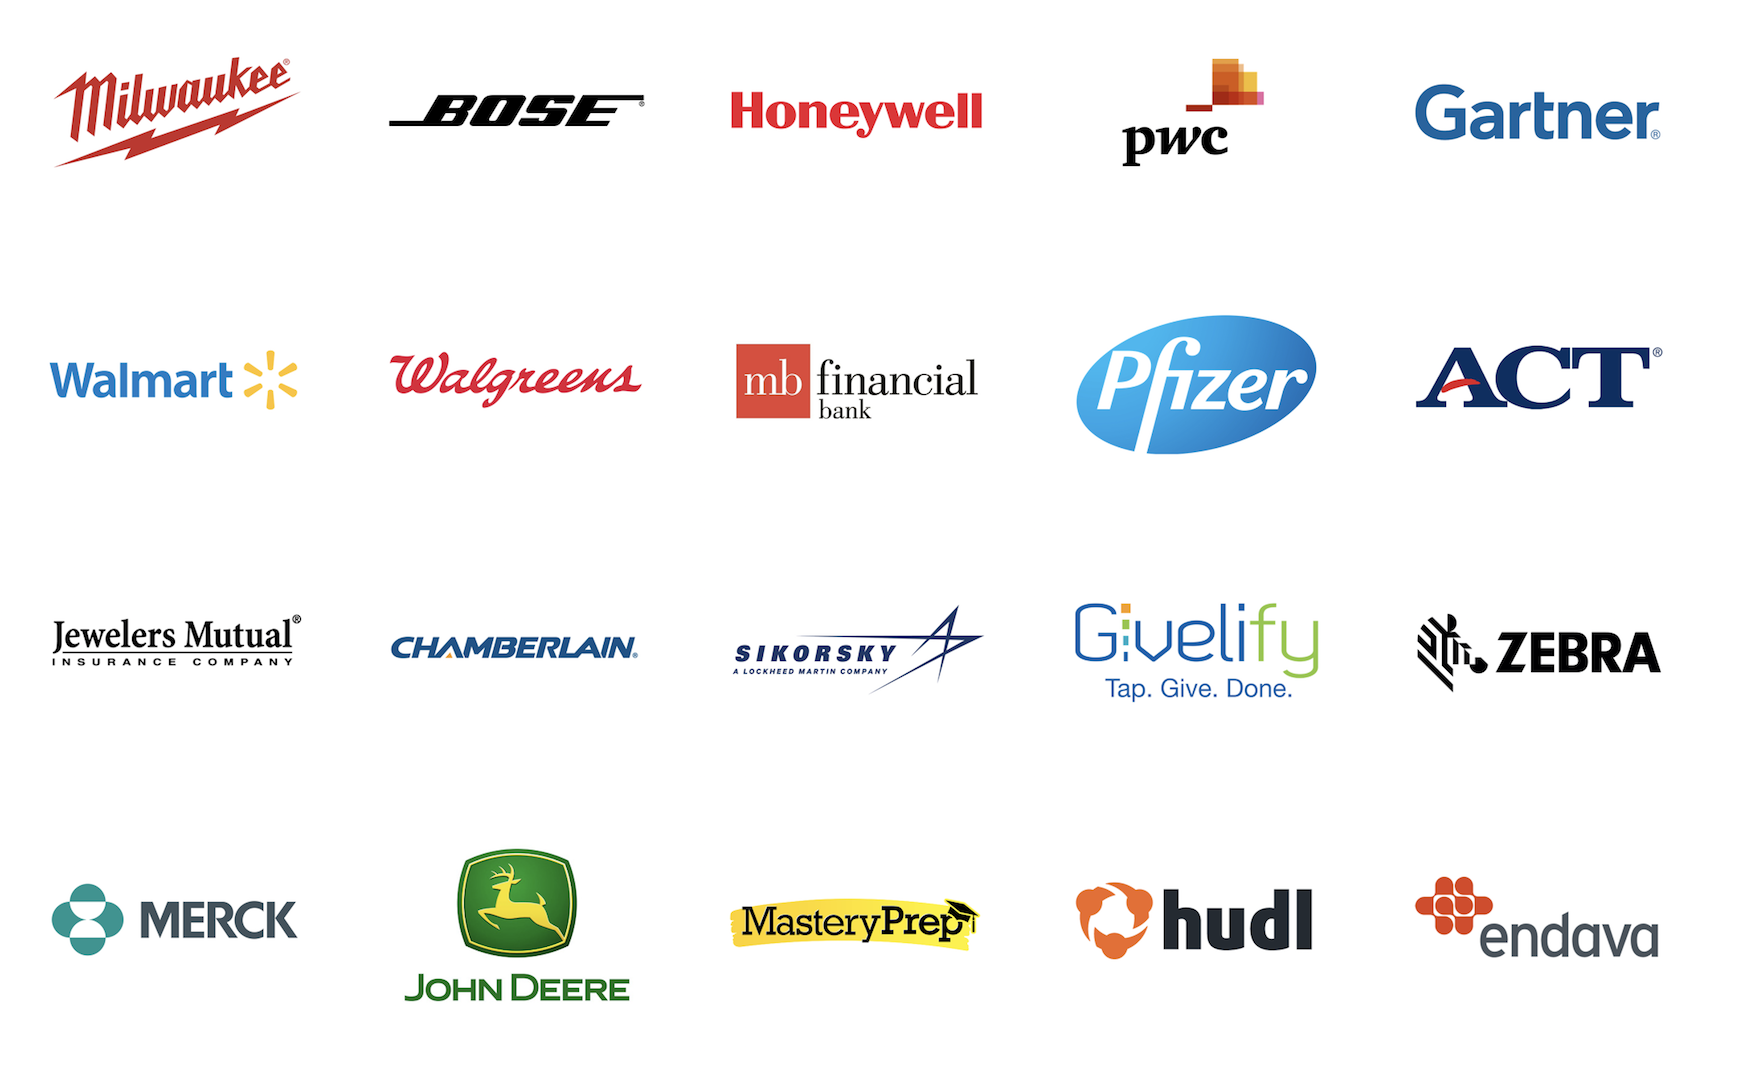 Milwaukee Tool, Bose, Honeywell, PwC, Gartner, Walmart, Walgreens, MB Financial Bank, Pfizer, ACT